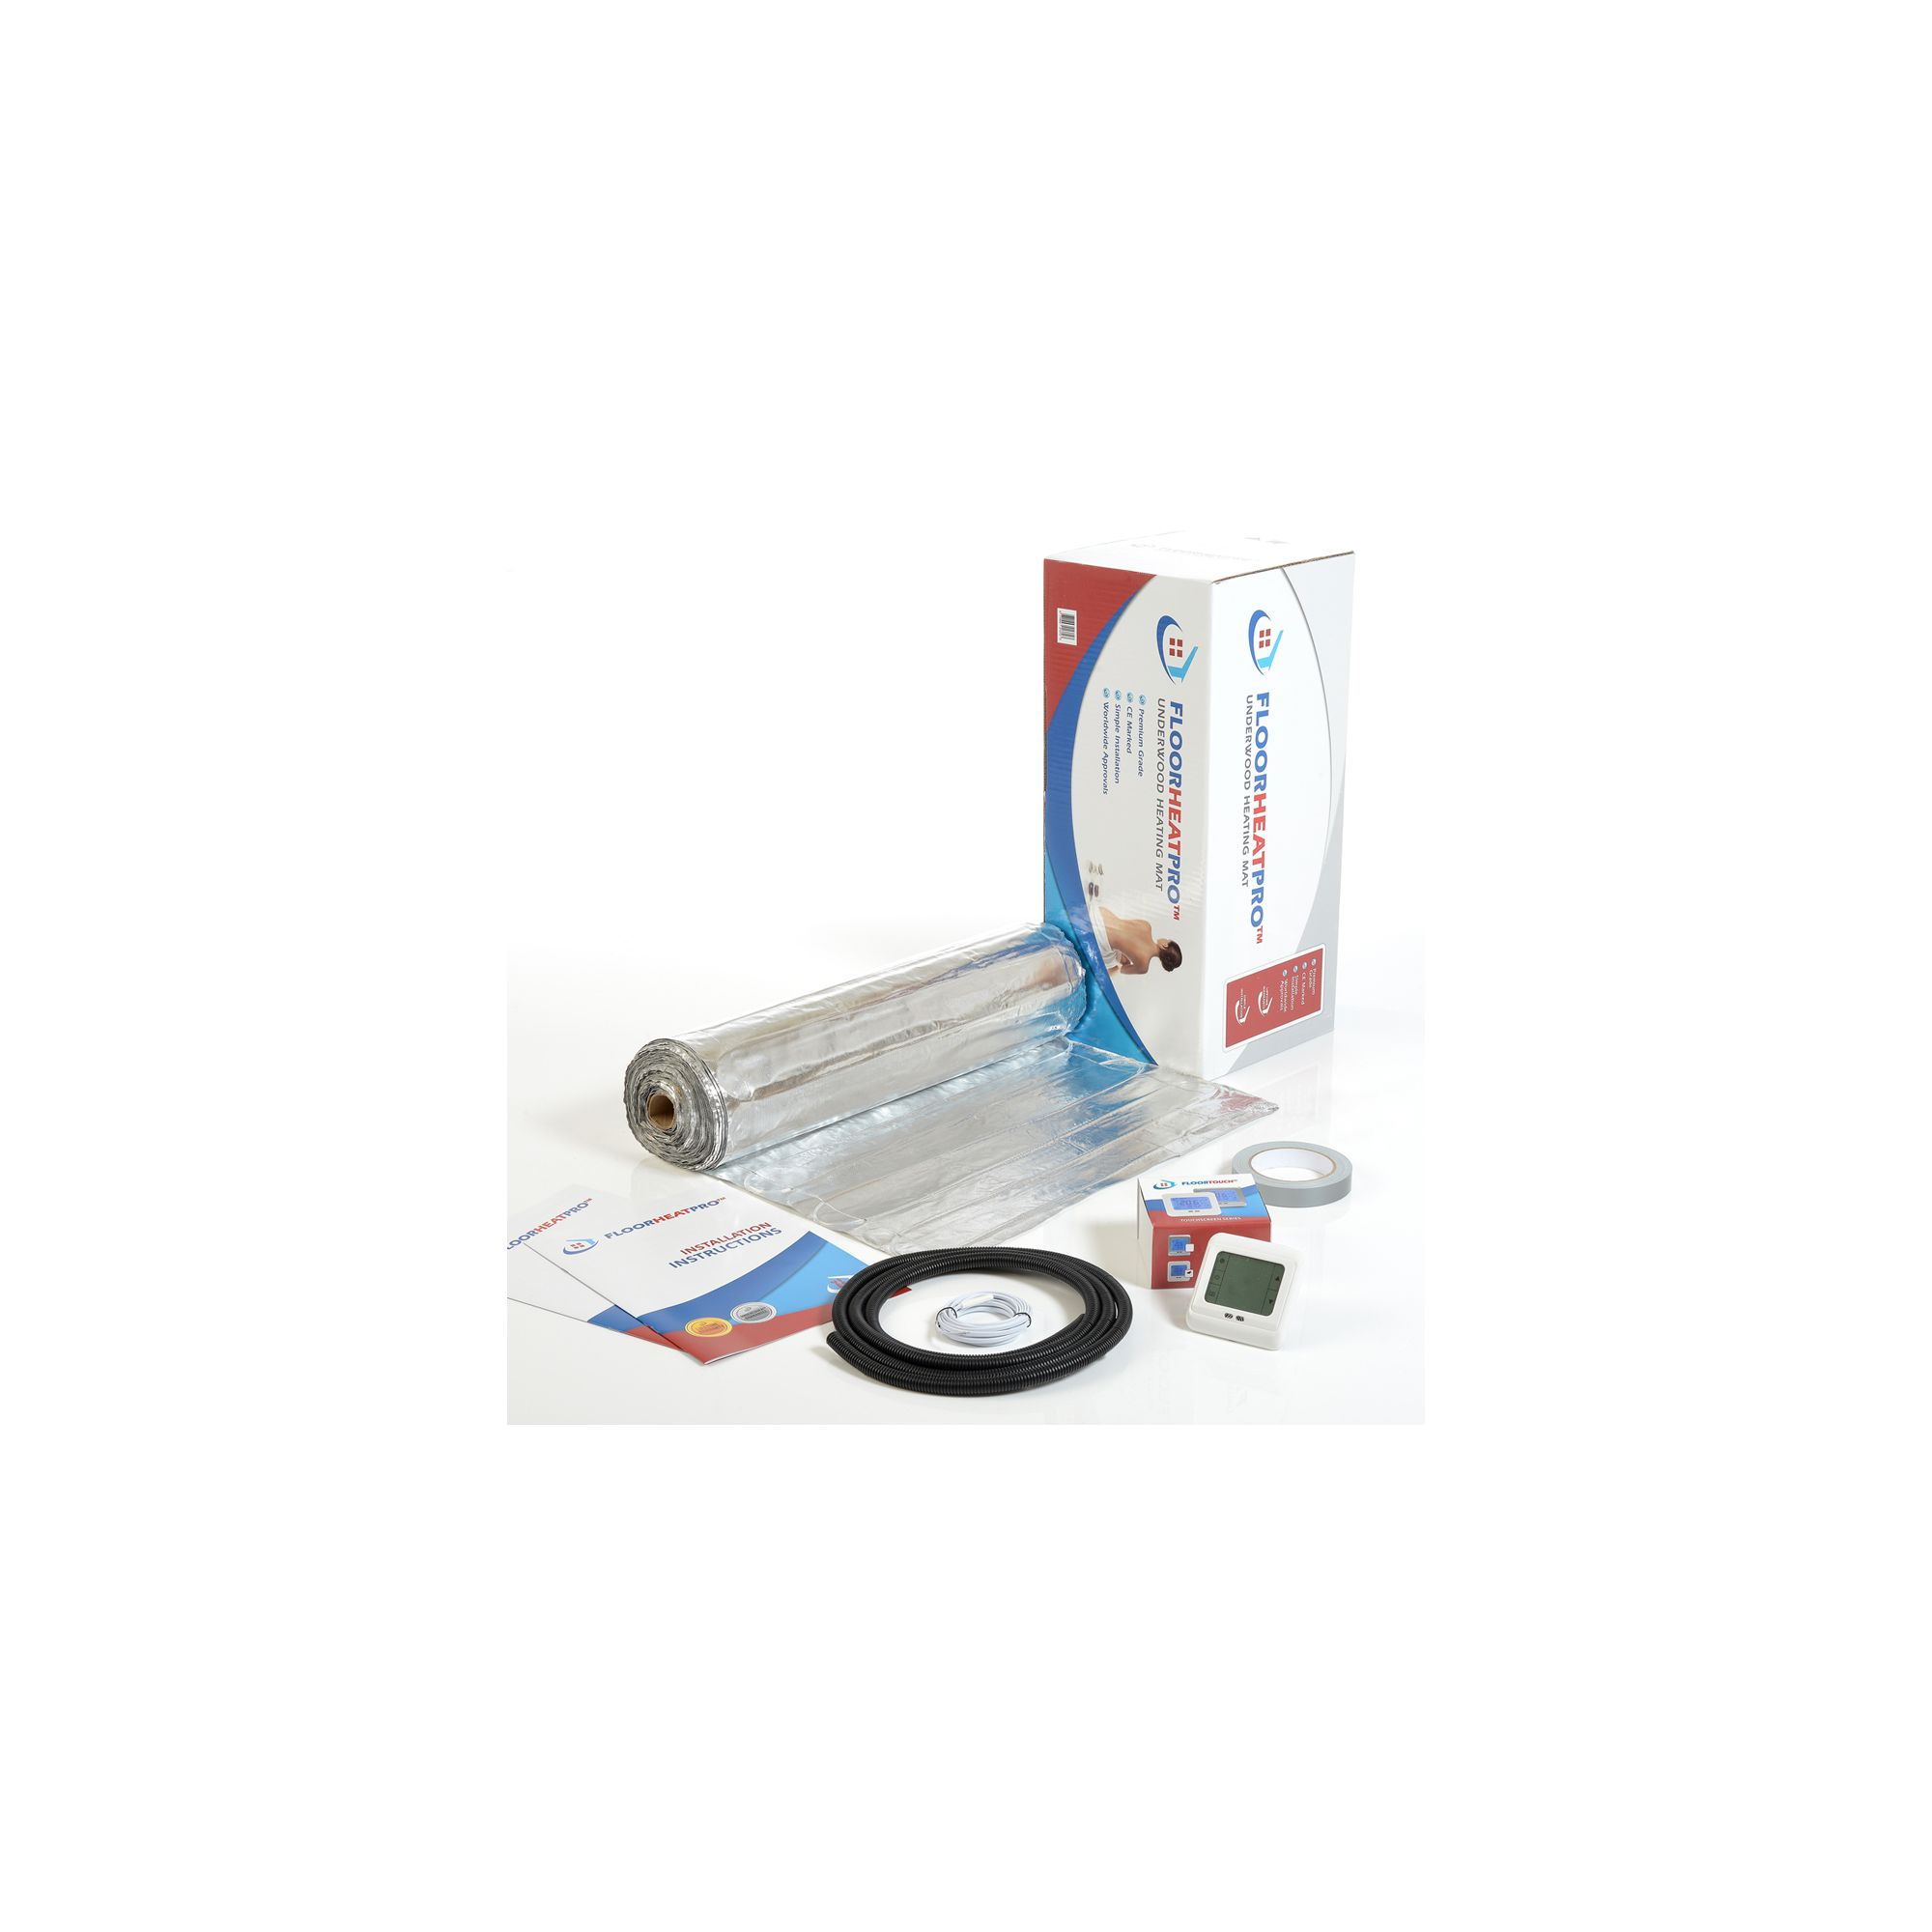 18.0 m2 - Underfloor Electric Heating Kit - Laminate at Tesco Direct